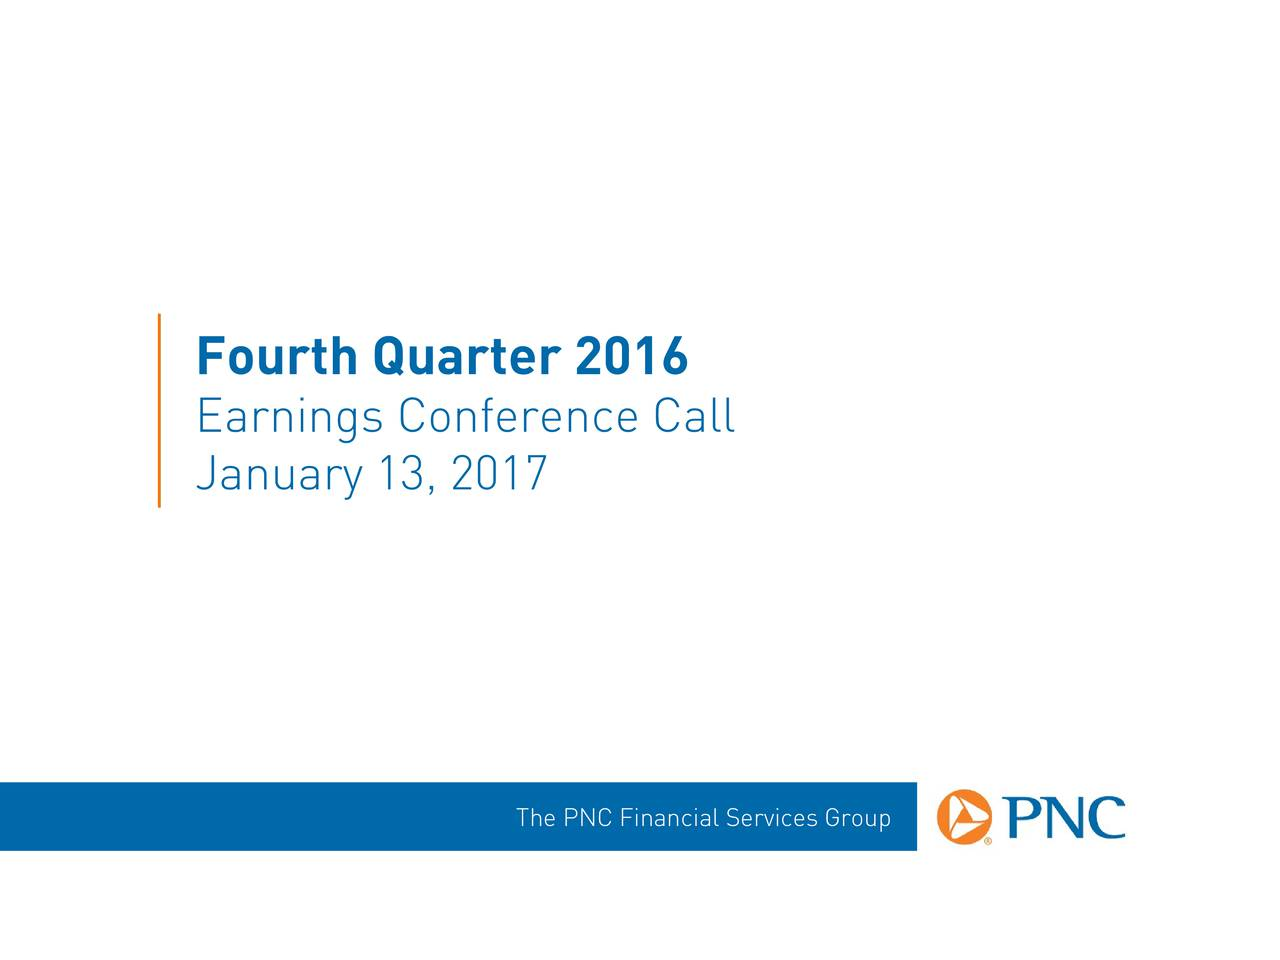 Earnings Conference Call January 13, 2017 The PNC Financial Services Group